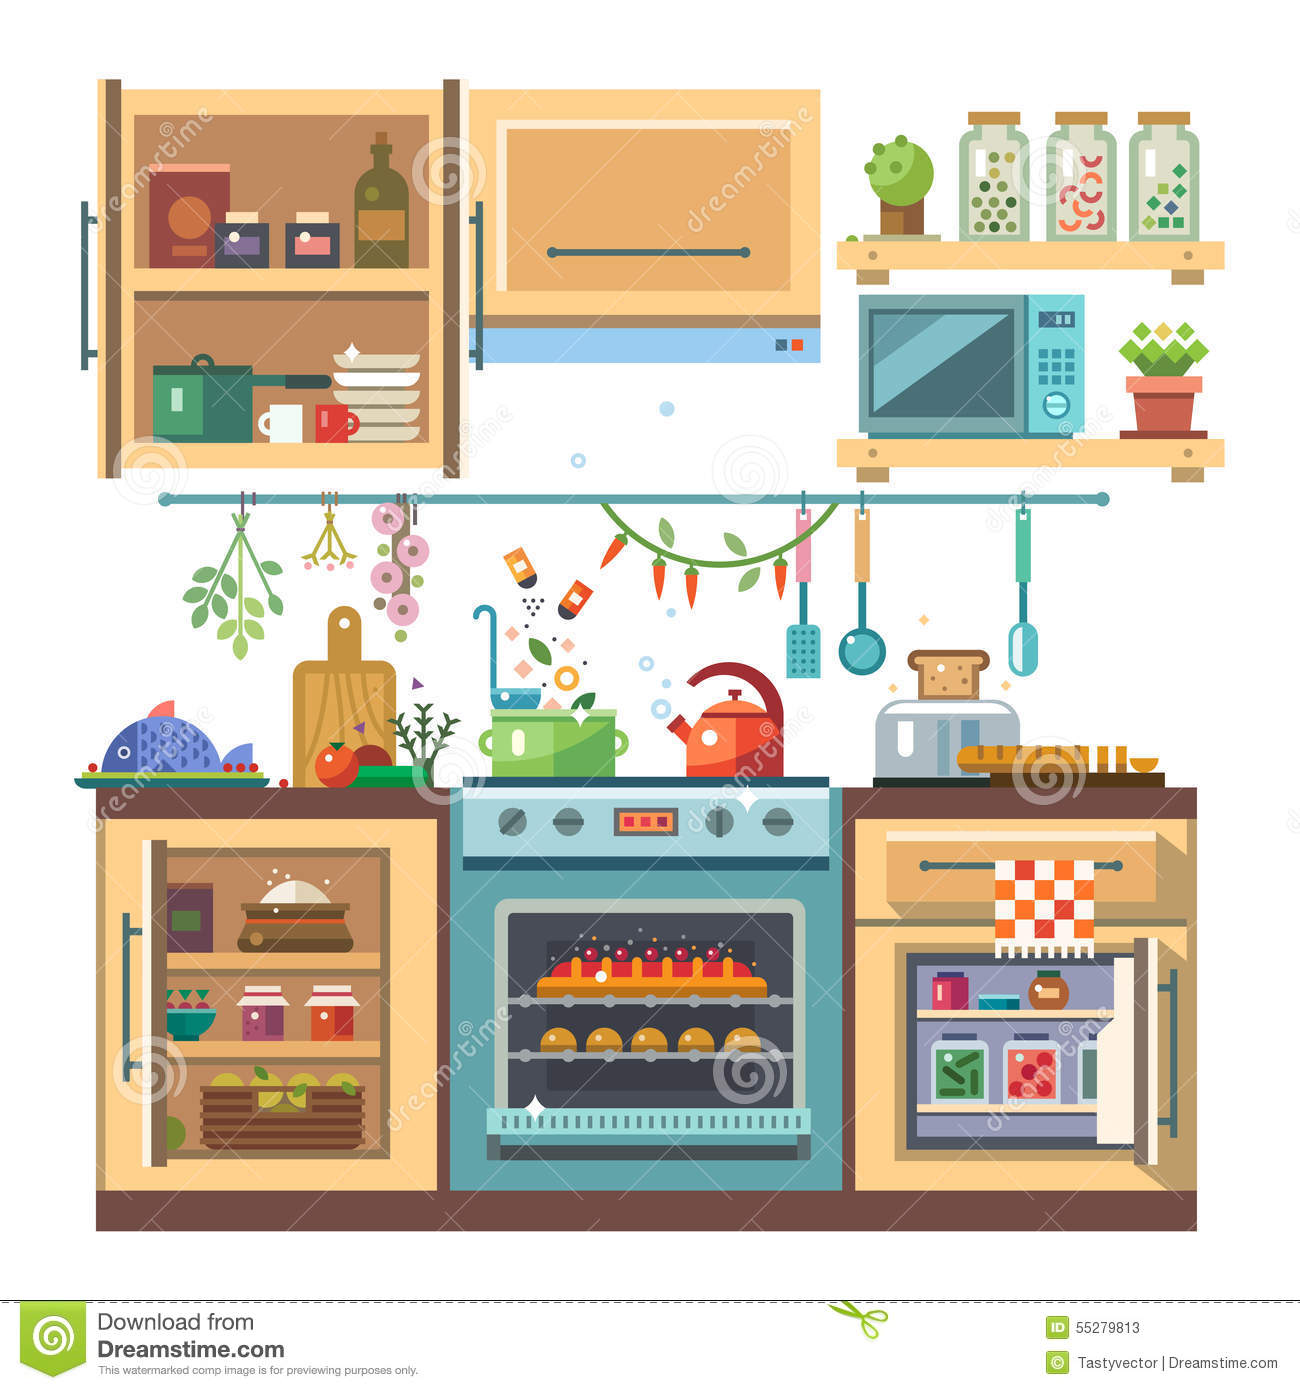 Home Kitchenware Stock Vector. Illustration Of Color